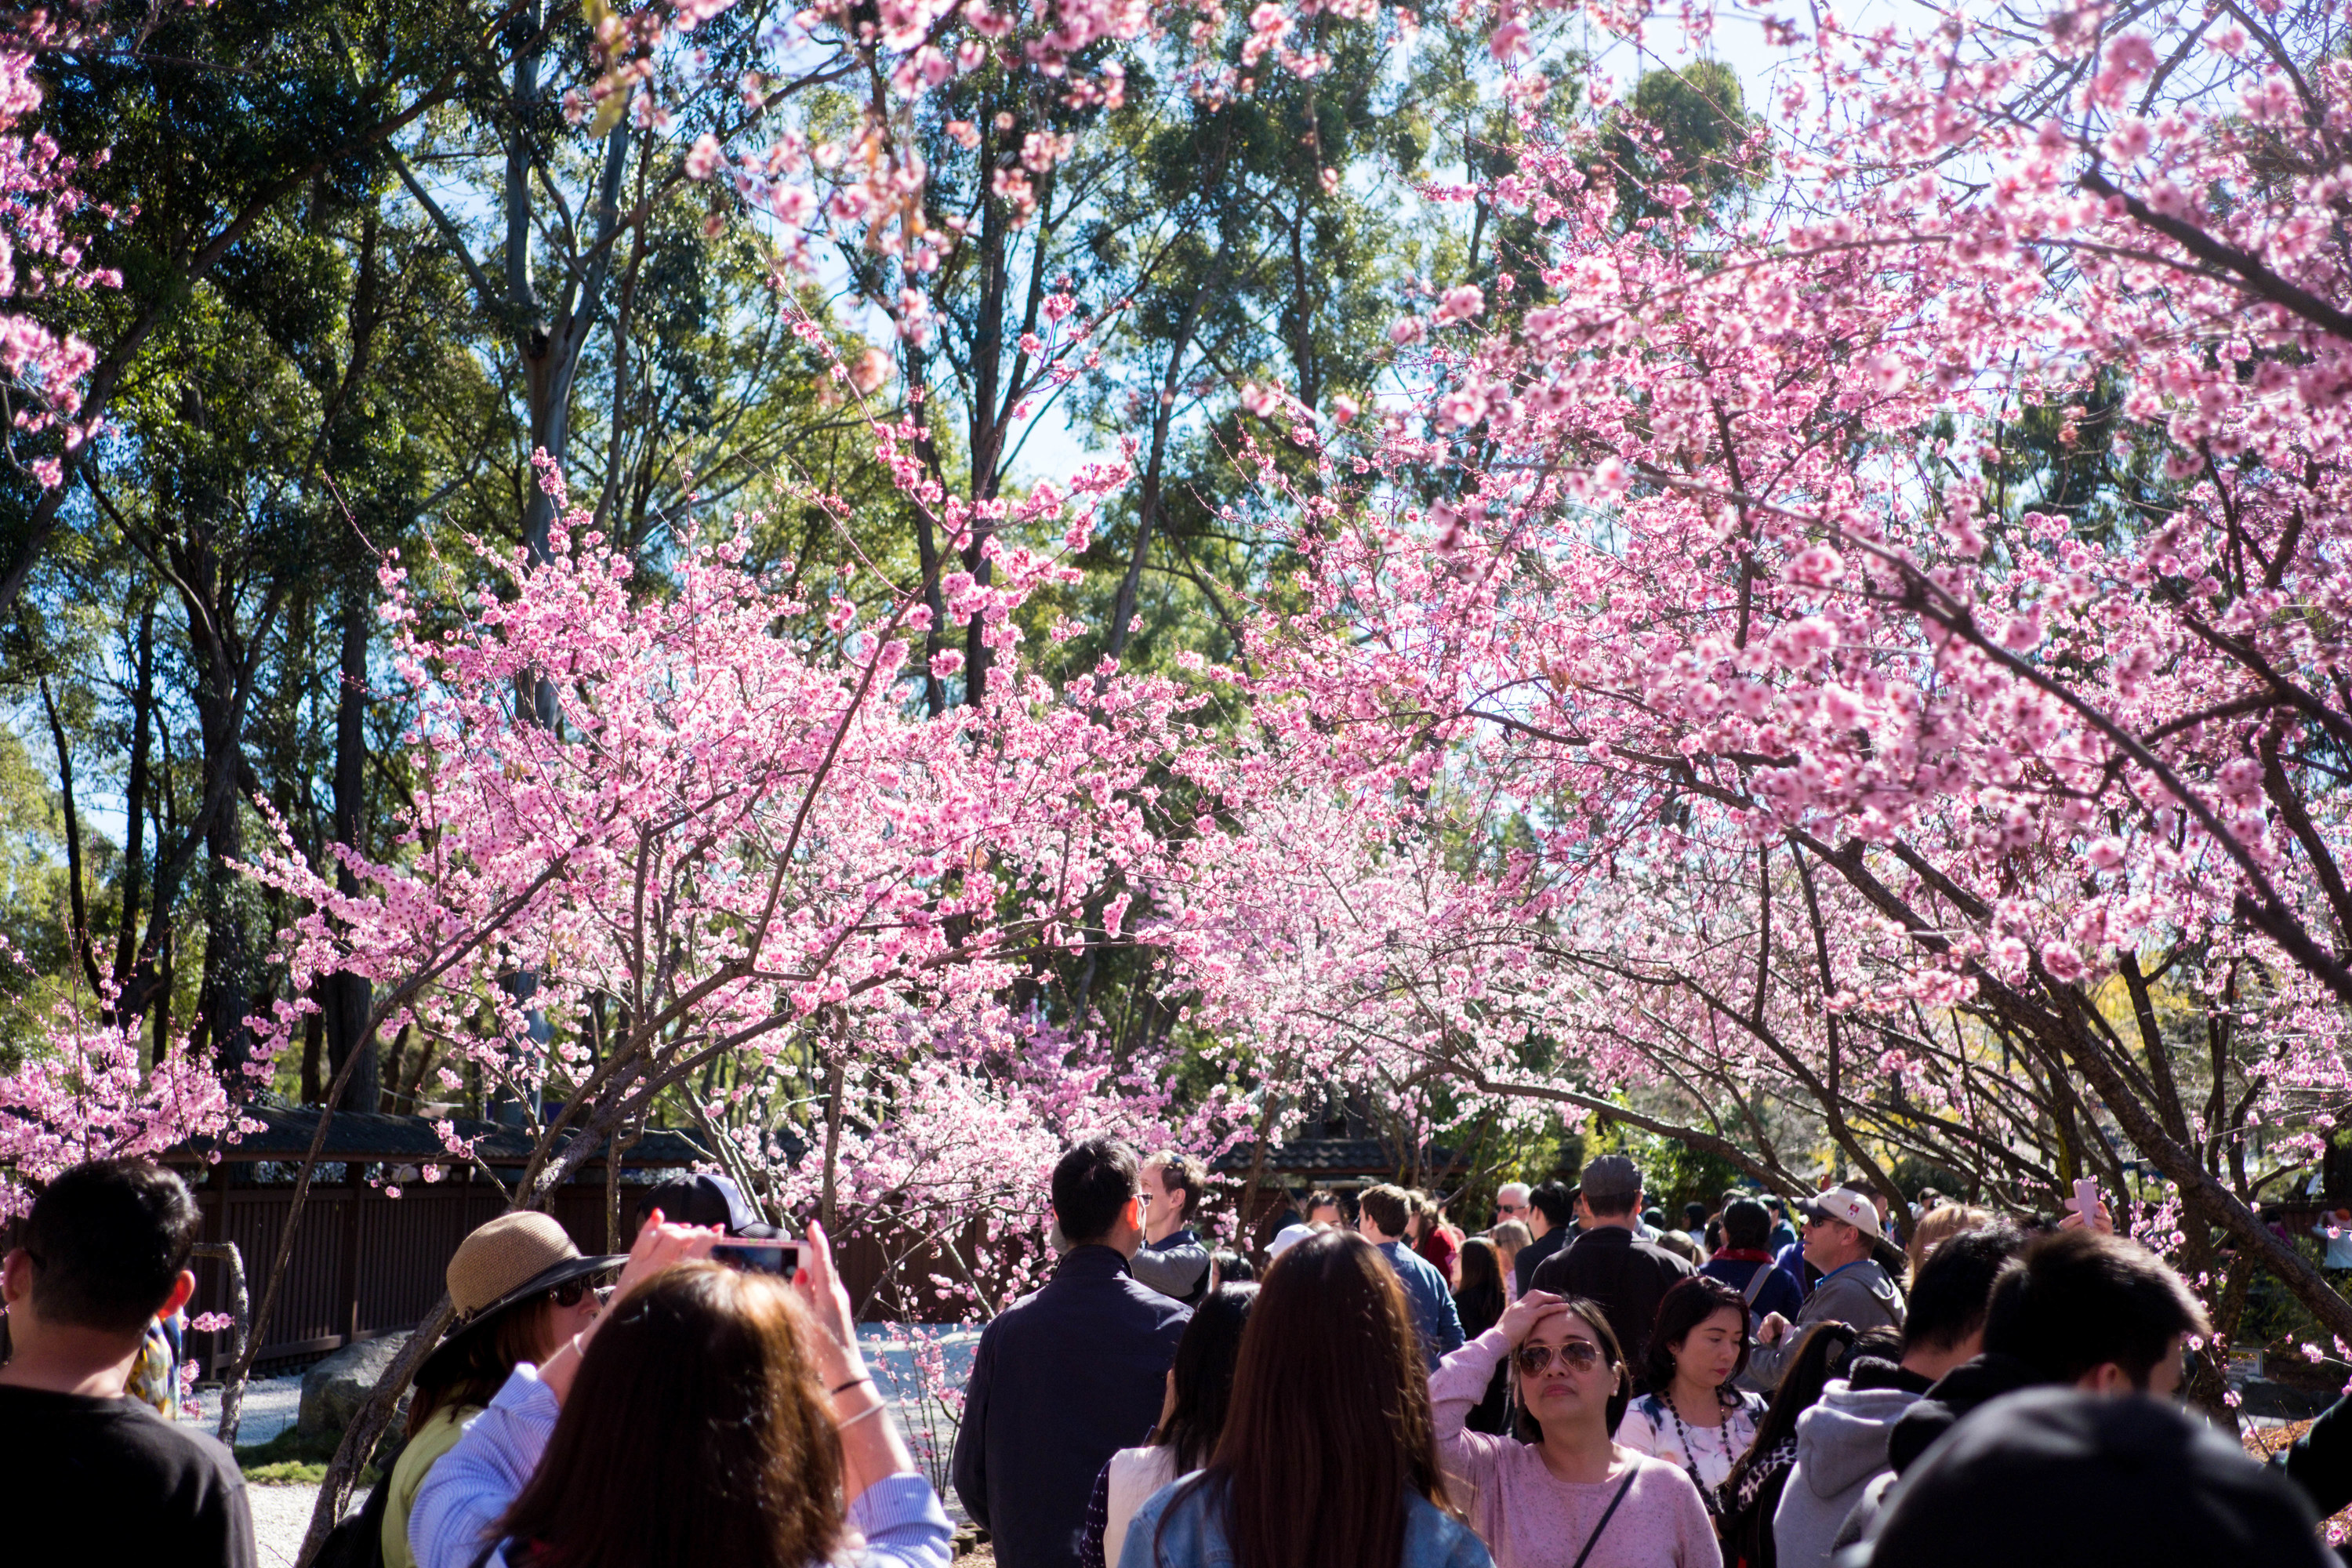 People walking under cherry blossom at the Sydney Cherry Blossom Festival